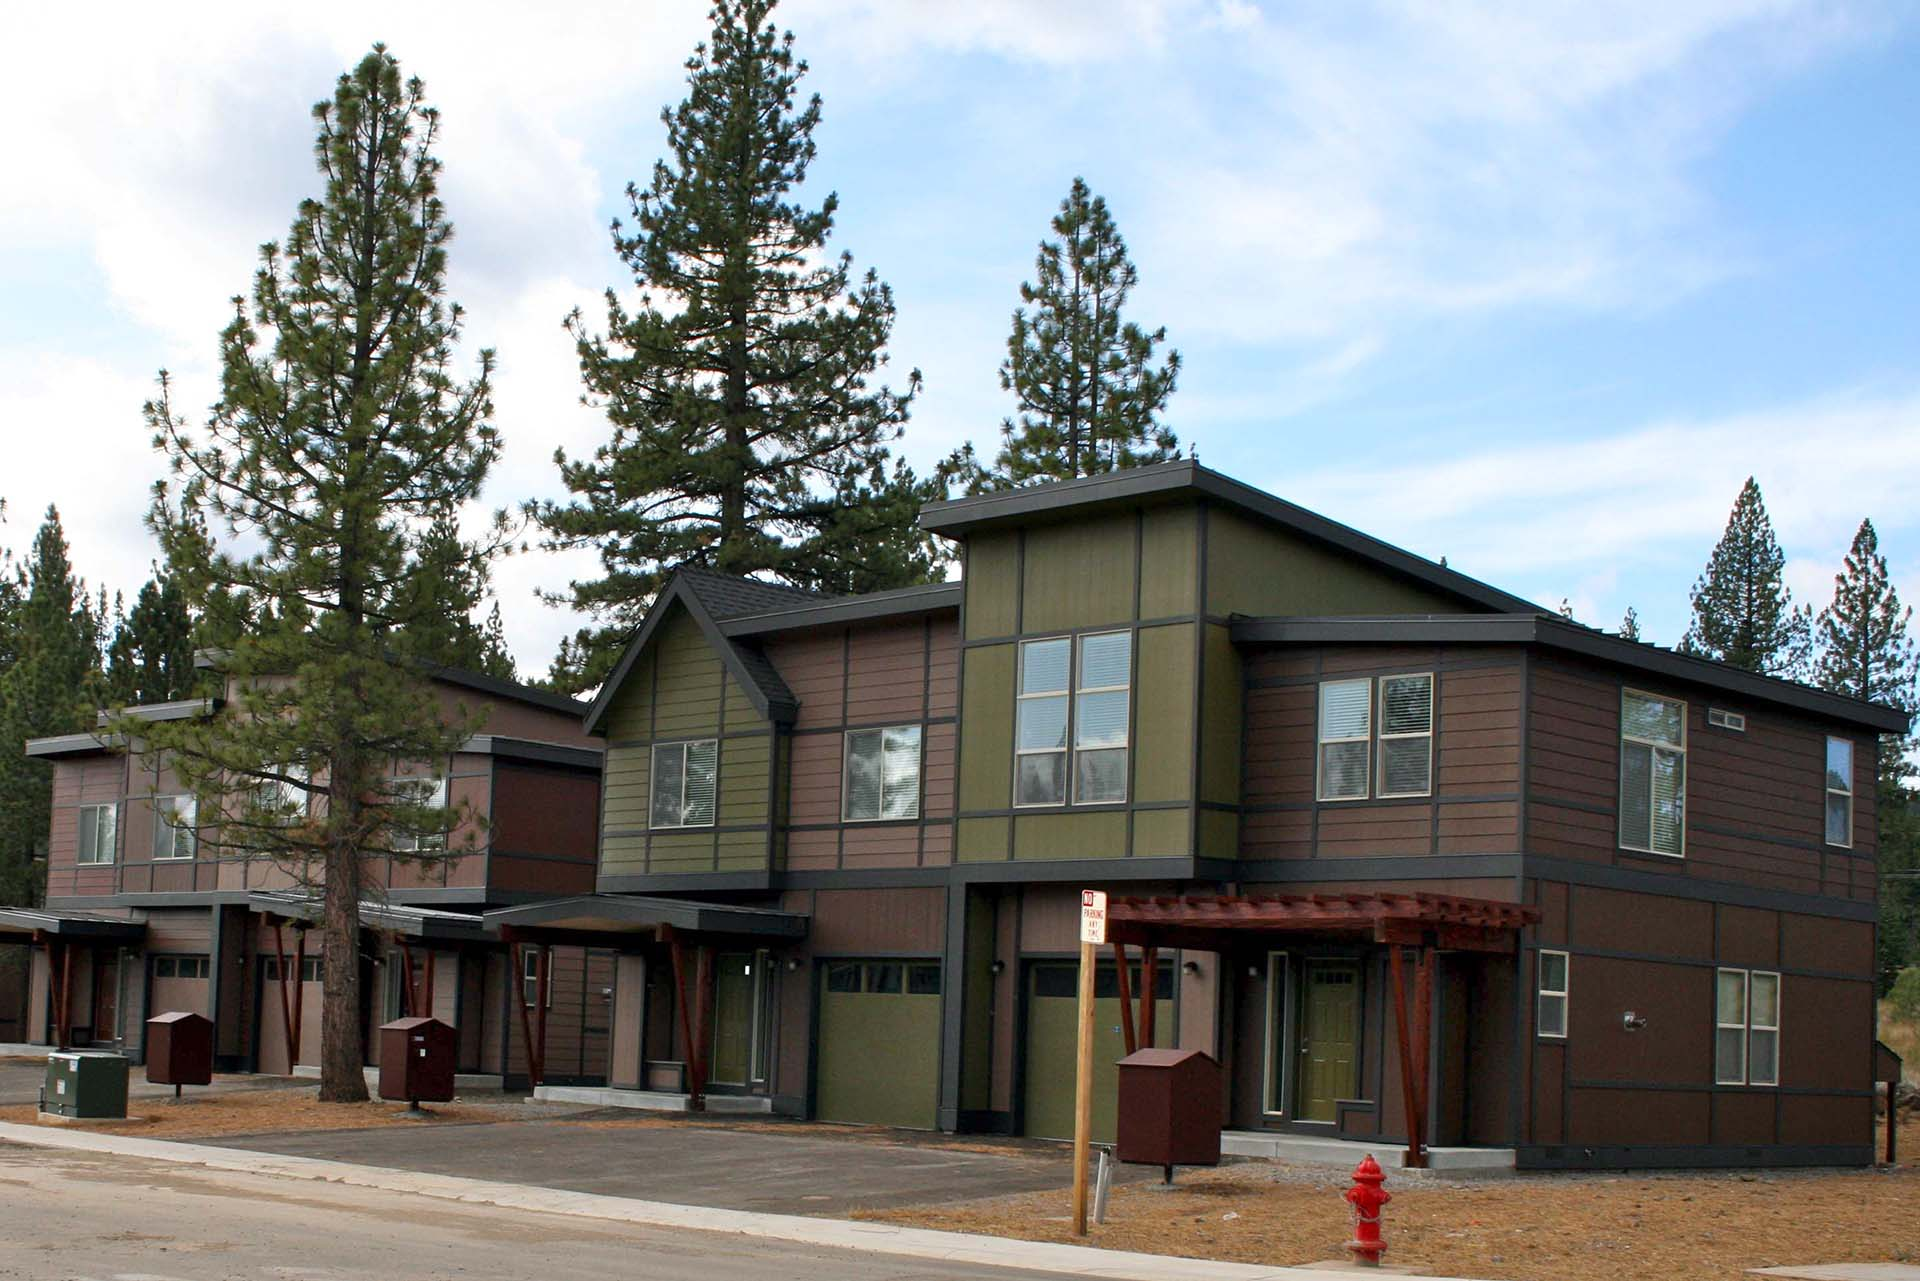 Craftsman Homes - Hopkins Village - Truckee, California